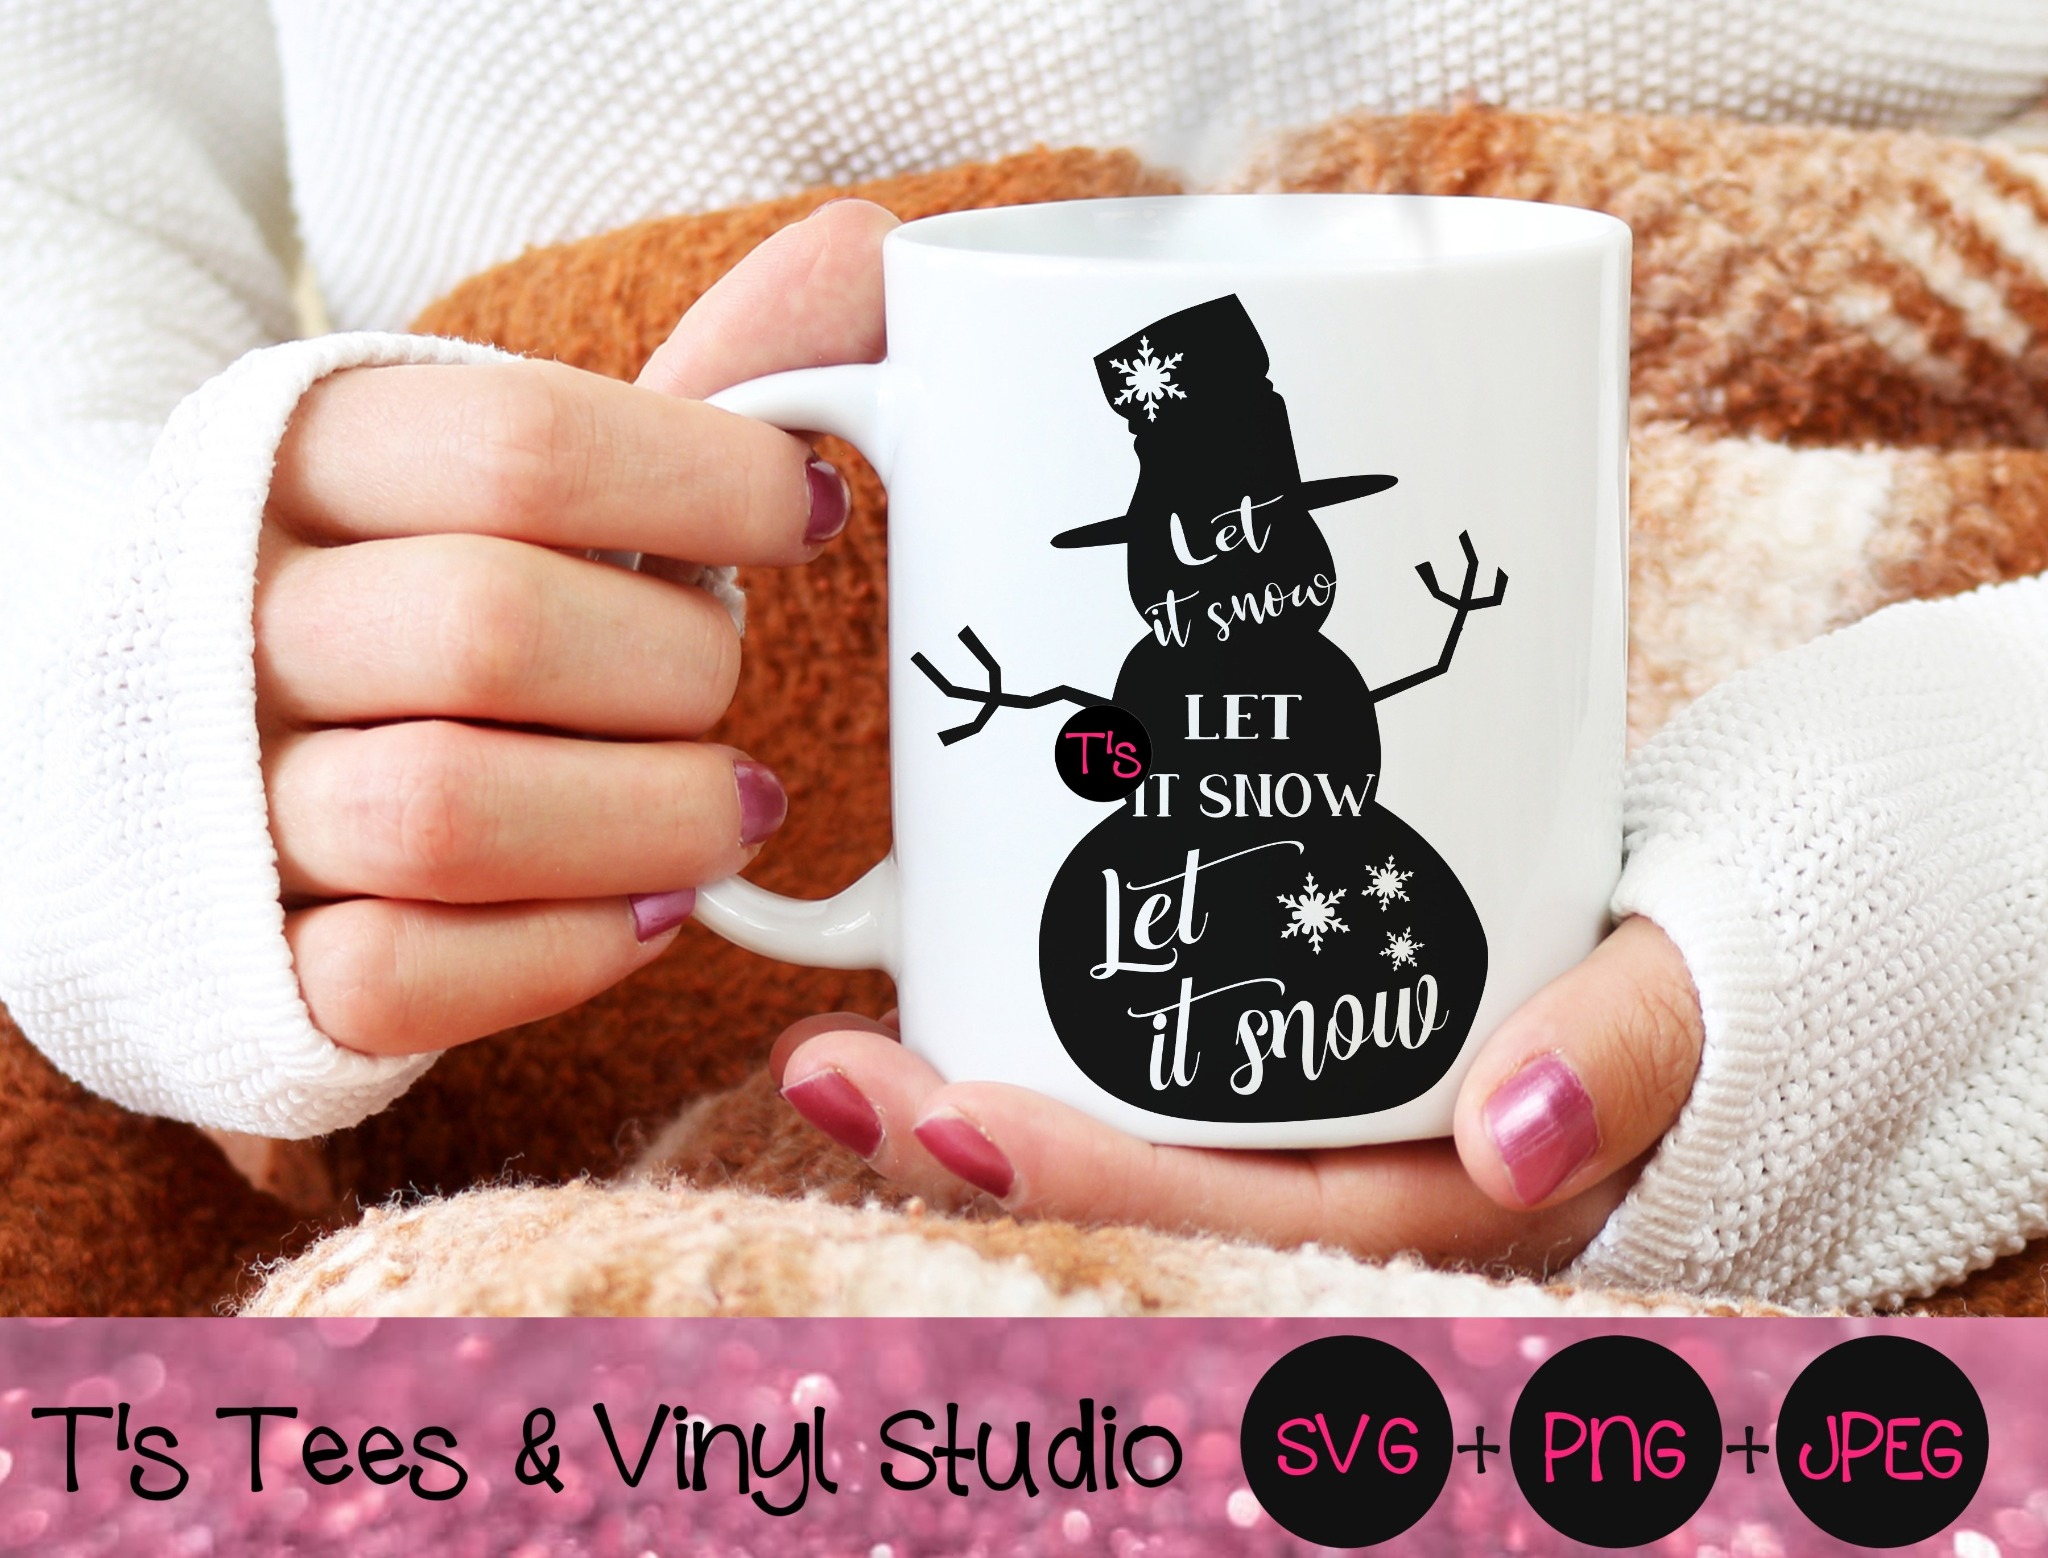 Let It Snow Svg, Snowman Svg, Snowflakes, Holiday Cheer, Christmas, Merry Christmas, Knockout Snowma